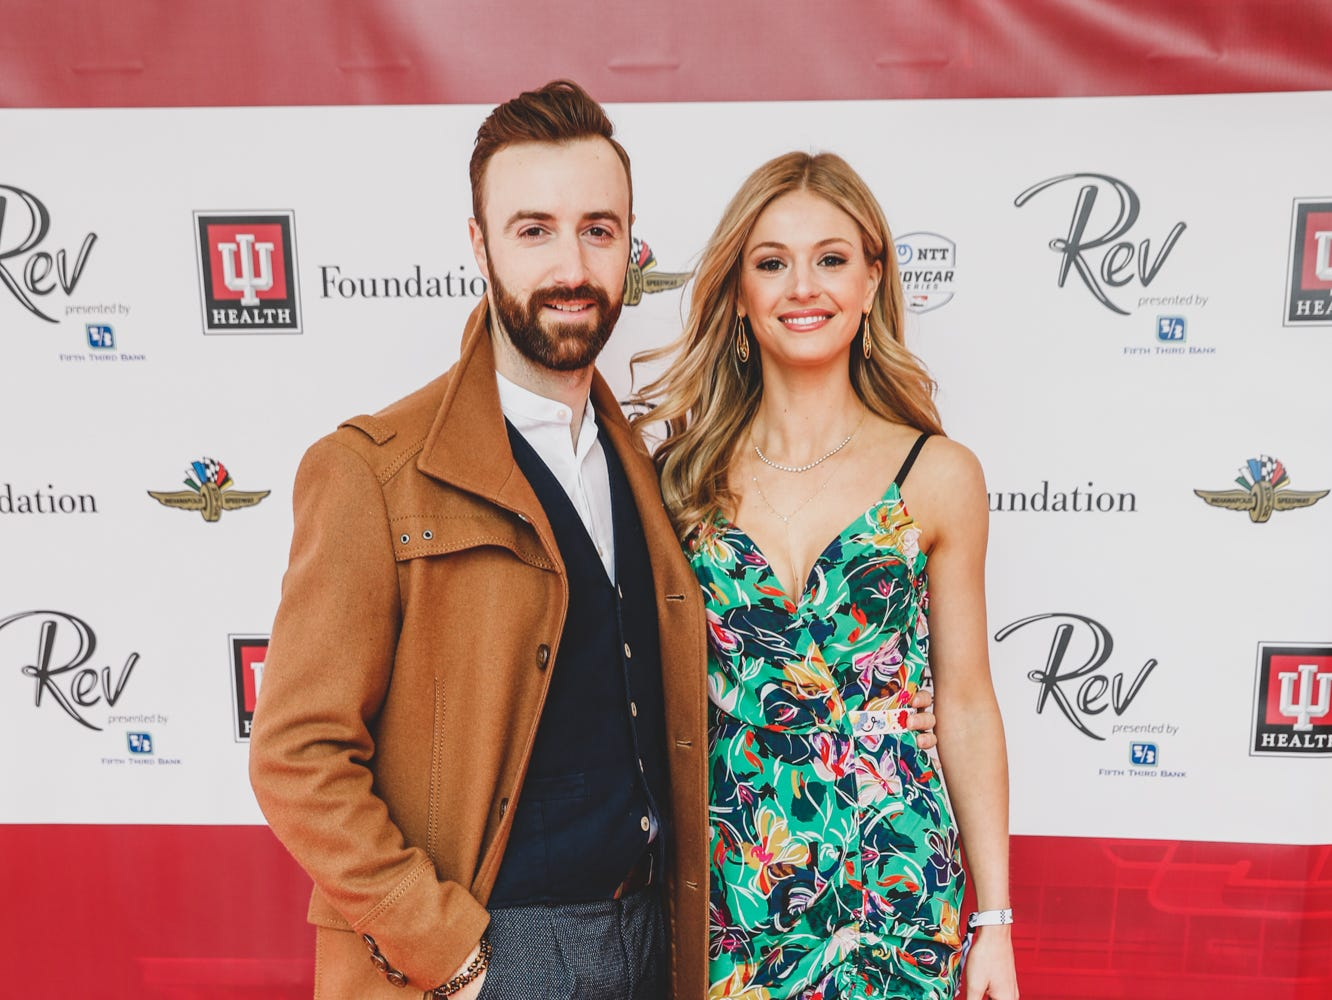 IndyCar driver James Hinchcliffe and fiancee an actress, Becky Dalton, walk the red carpet at the Rev Indy fundraiser, held at the Indianapolis Motor Speedway on Saturday, May 4, 2019. Funds raised support the IU Health Foundation statewide and the IU Health Emergency Medical Center at IMS.